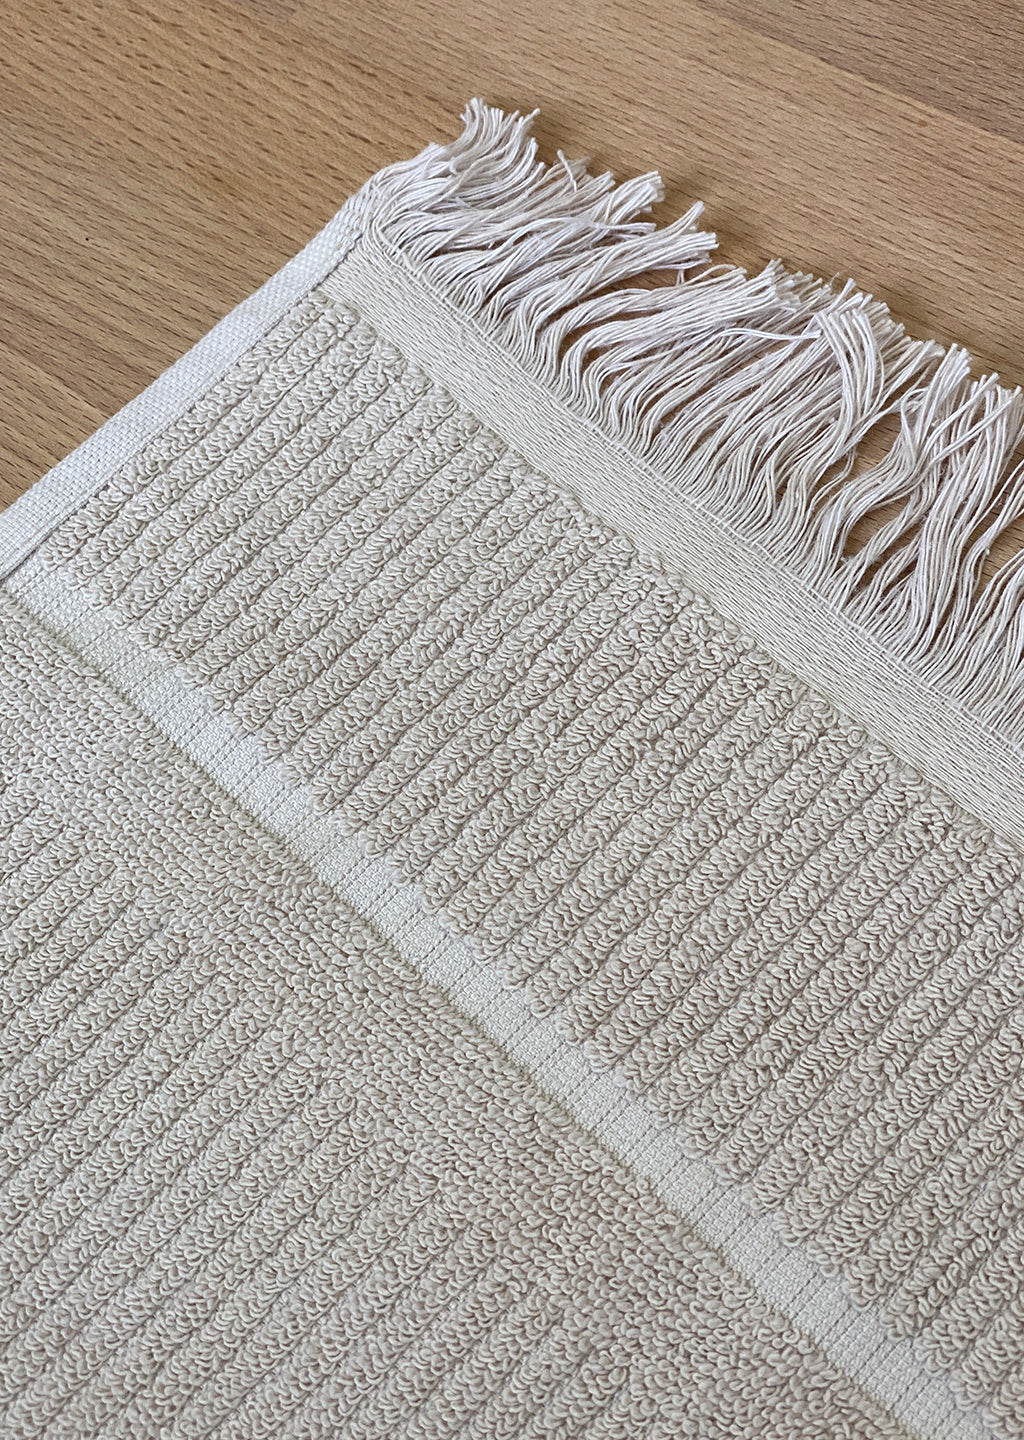 Luxe Bath Mat - Sand - (Seconds)